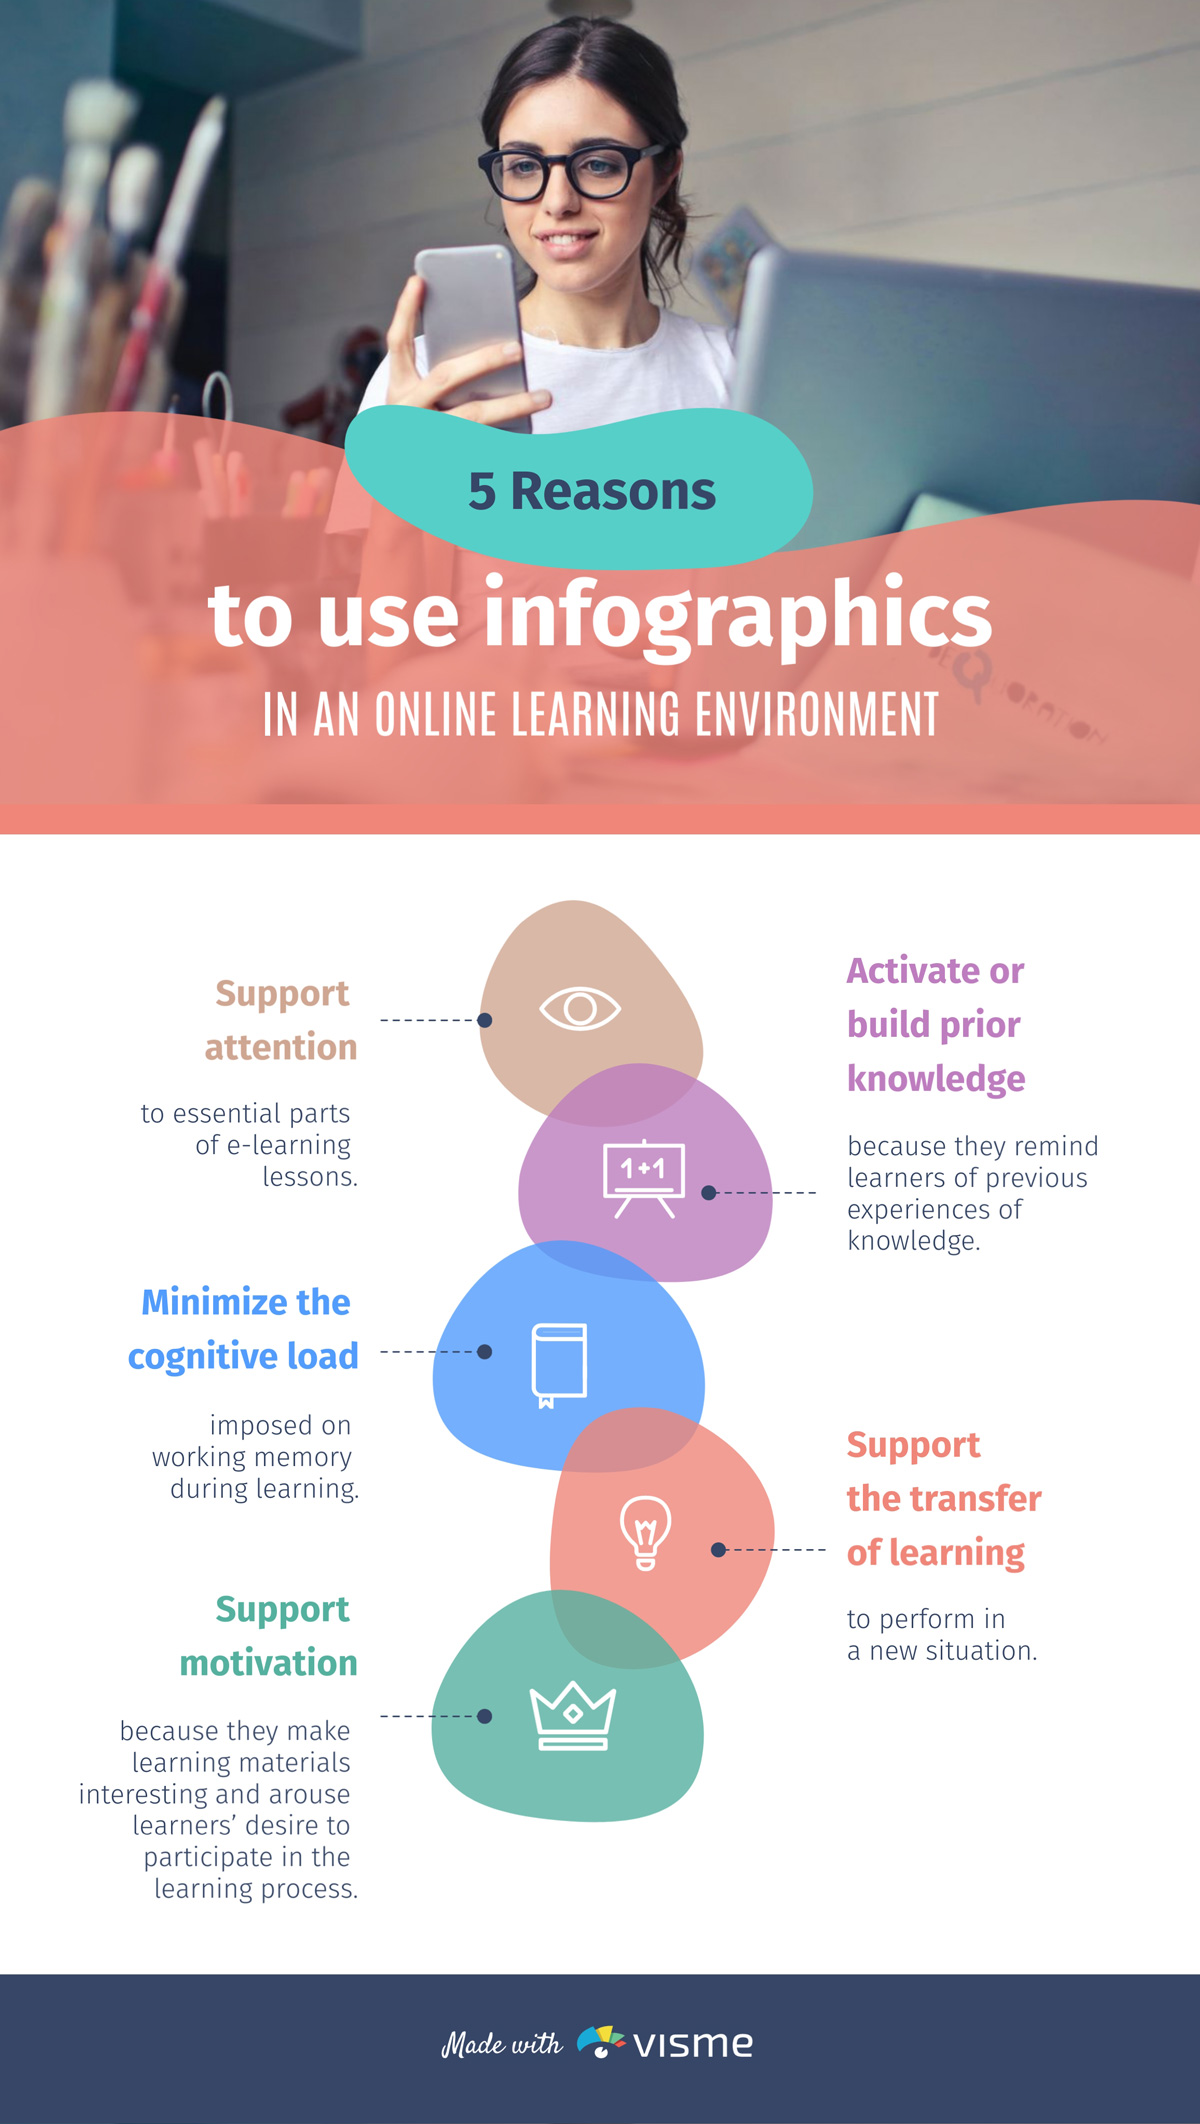 educational infographics - 5 reasons to use infographics